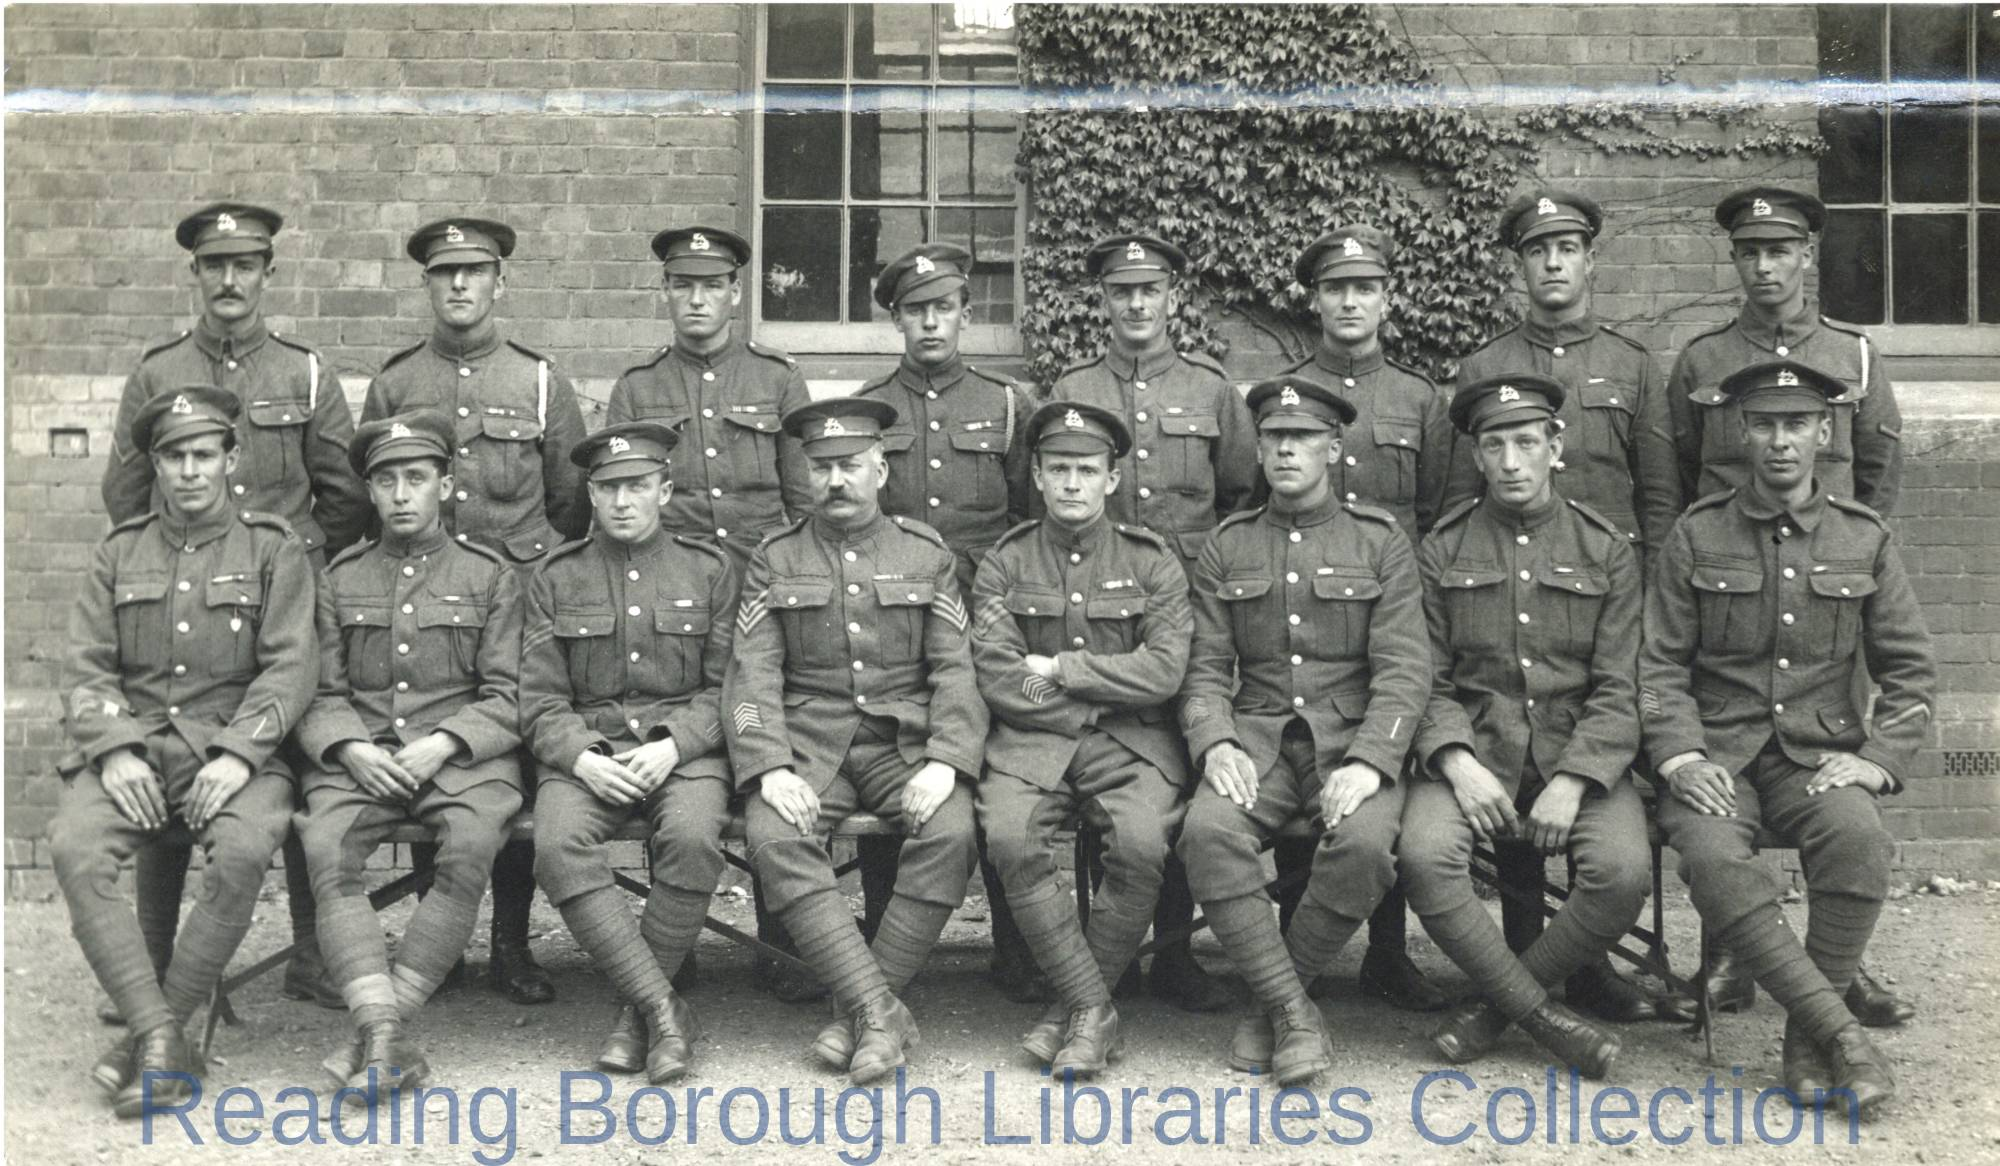 The Return of the 5th Battalion Royal Berkshire Regiment 18 June 1919. The 16 men who served all through the war are photographed at Brock Barracks.